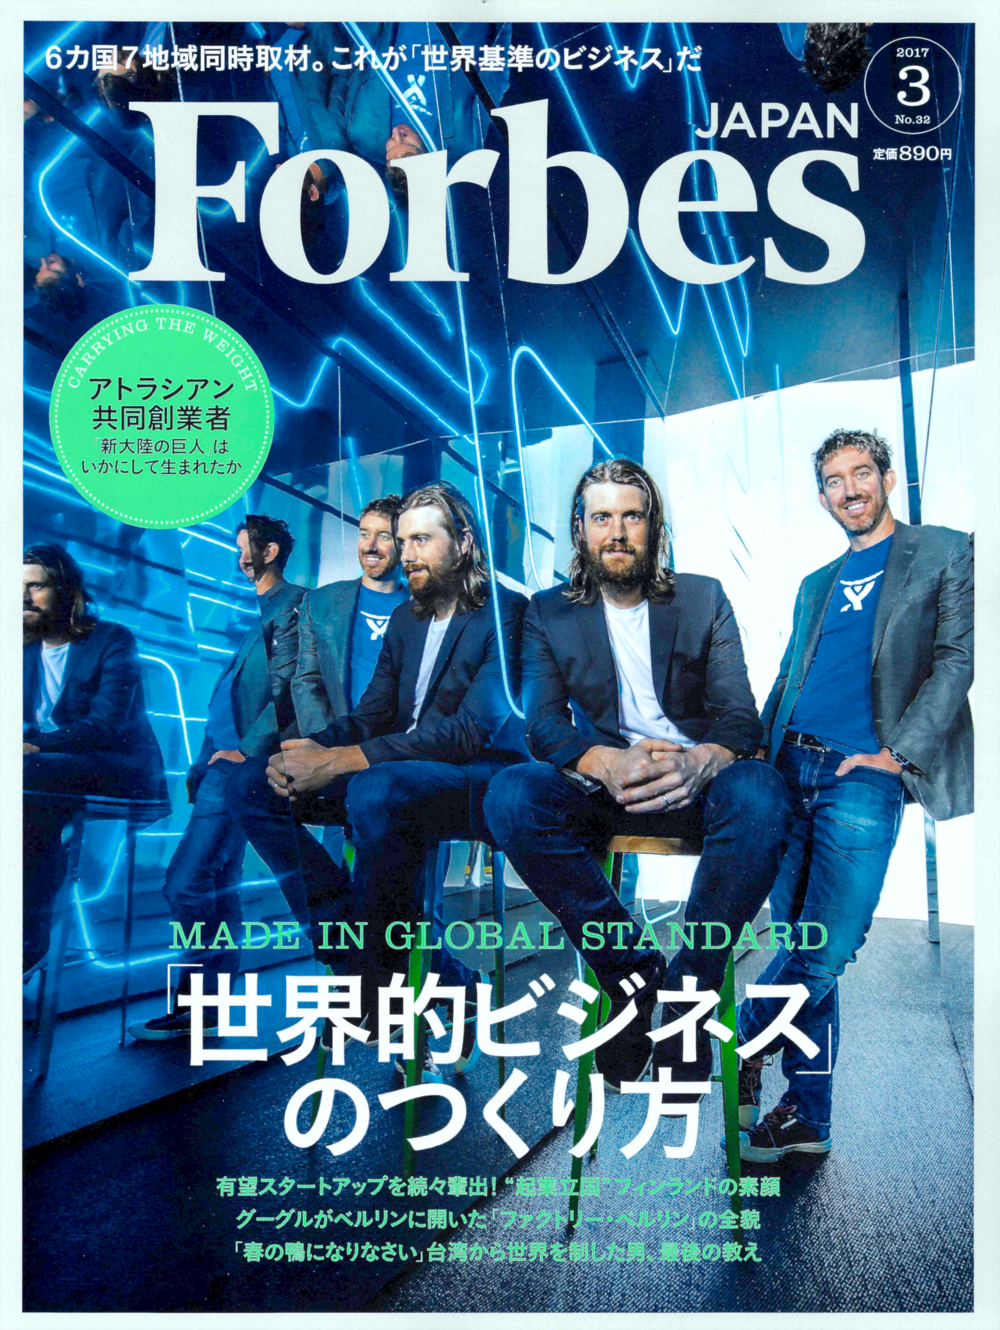 COMMON in Forbes - Click on the cover to read.